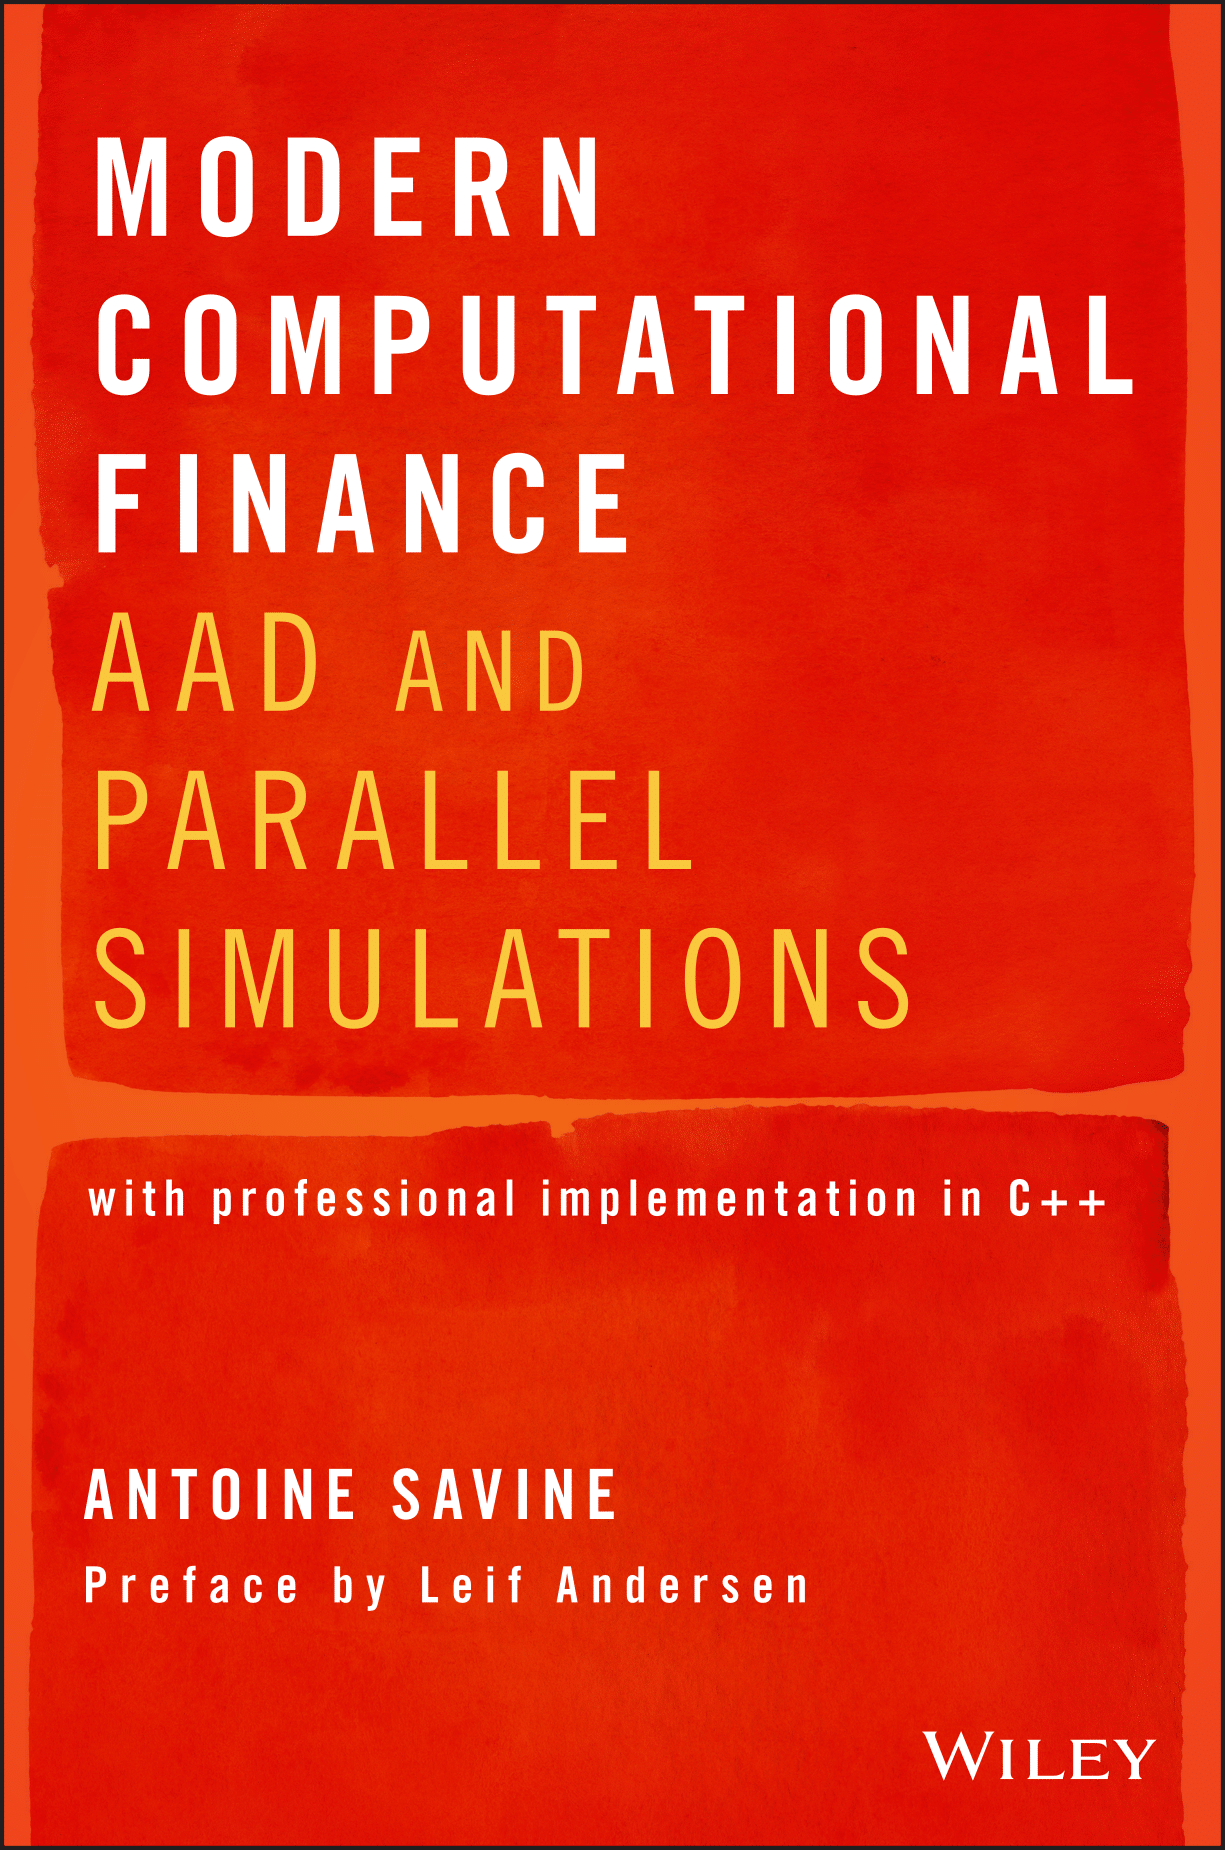 Modern Computational Finance: Parts I and II free on SSRN for a limited time